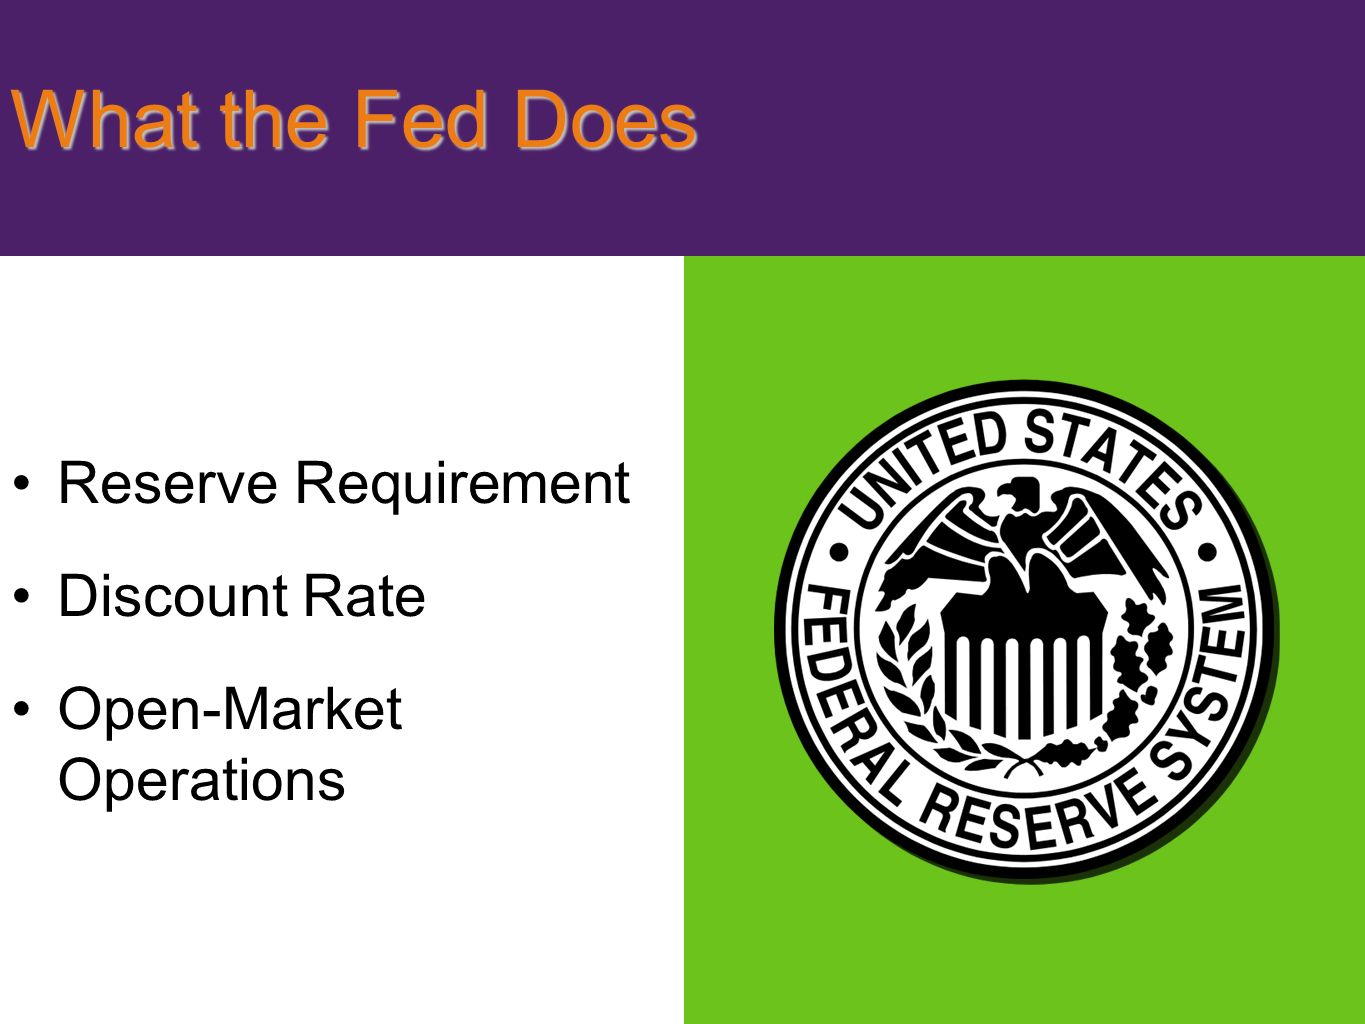 the federal reserveís current monetary policy essay Free college essay the federal reserve's current monetary policy the federal reserve's current monetary policy the federal reserve monetary policy is the responsibility of the fomc (federal open market.